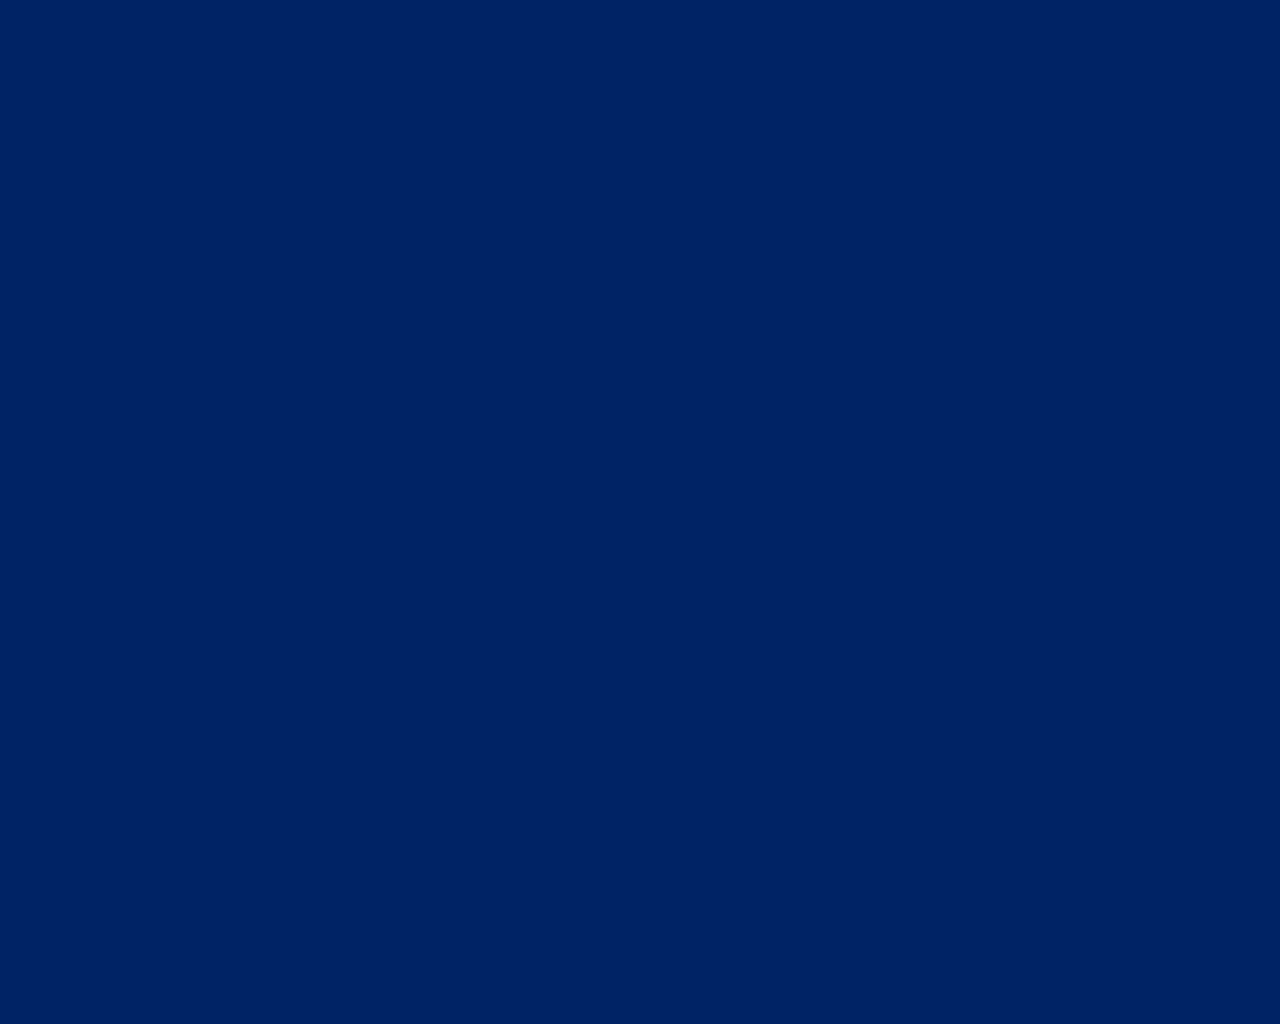 1280x1024 resolution Royal Blue Traditional solid color background 1280x1024